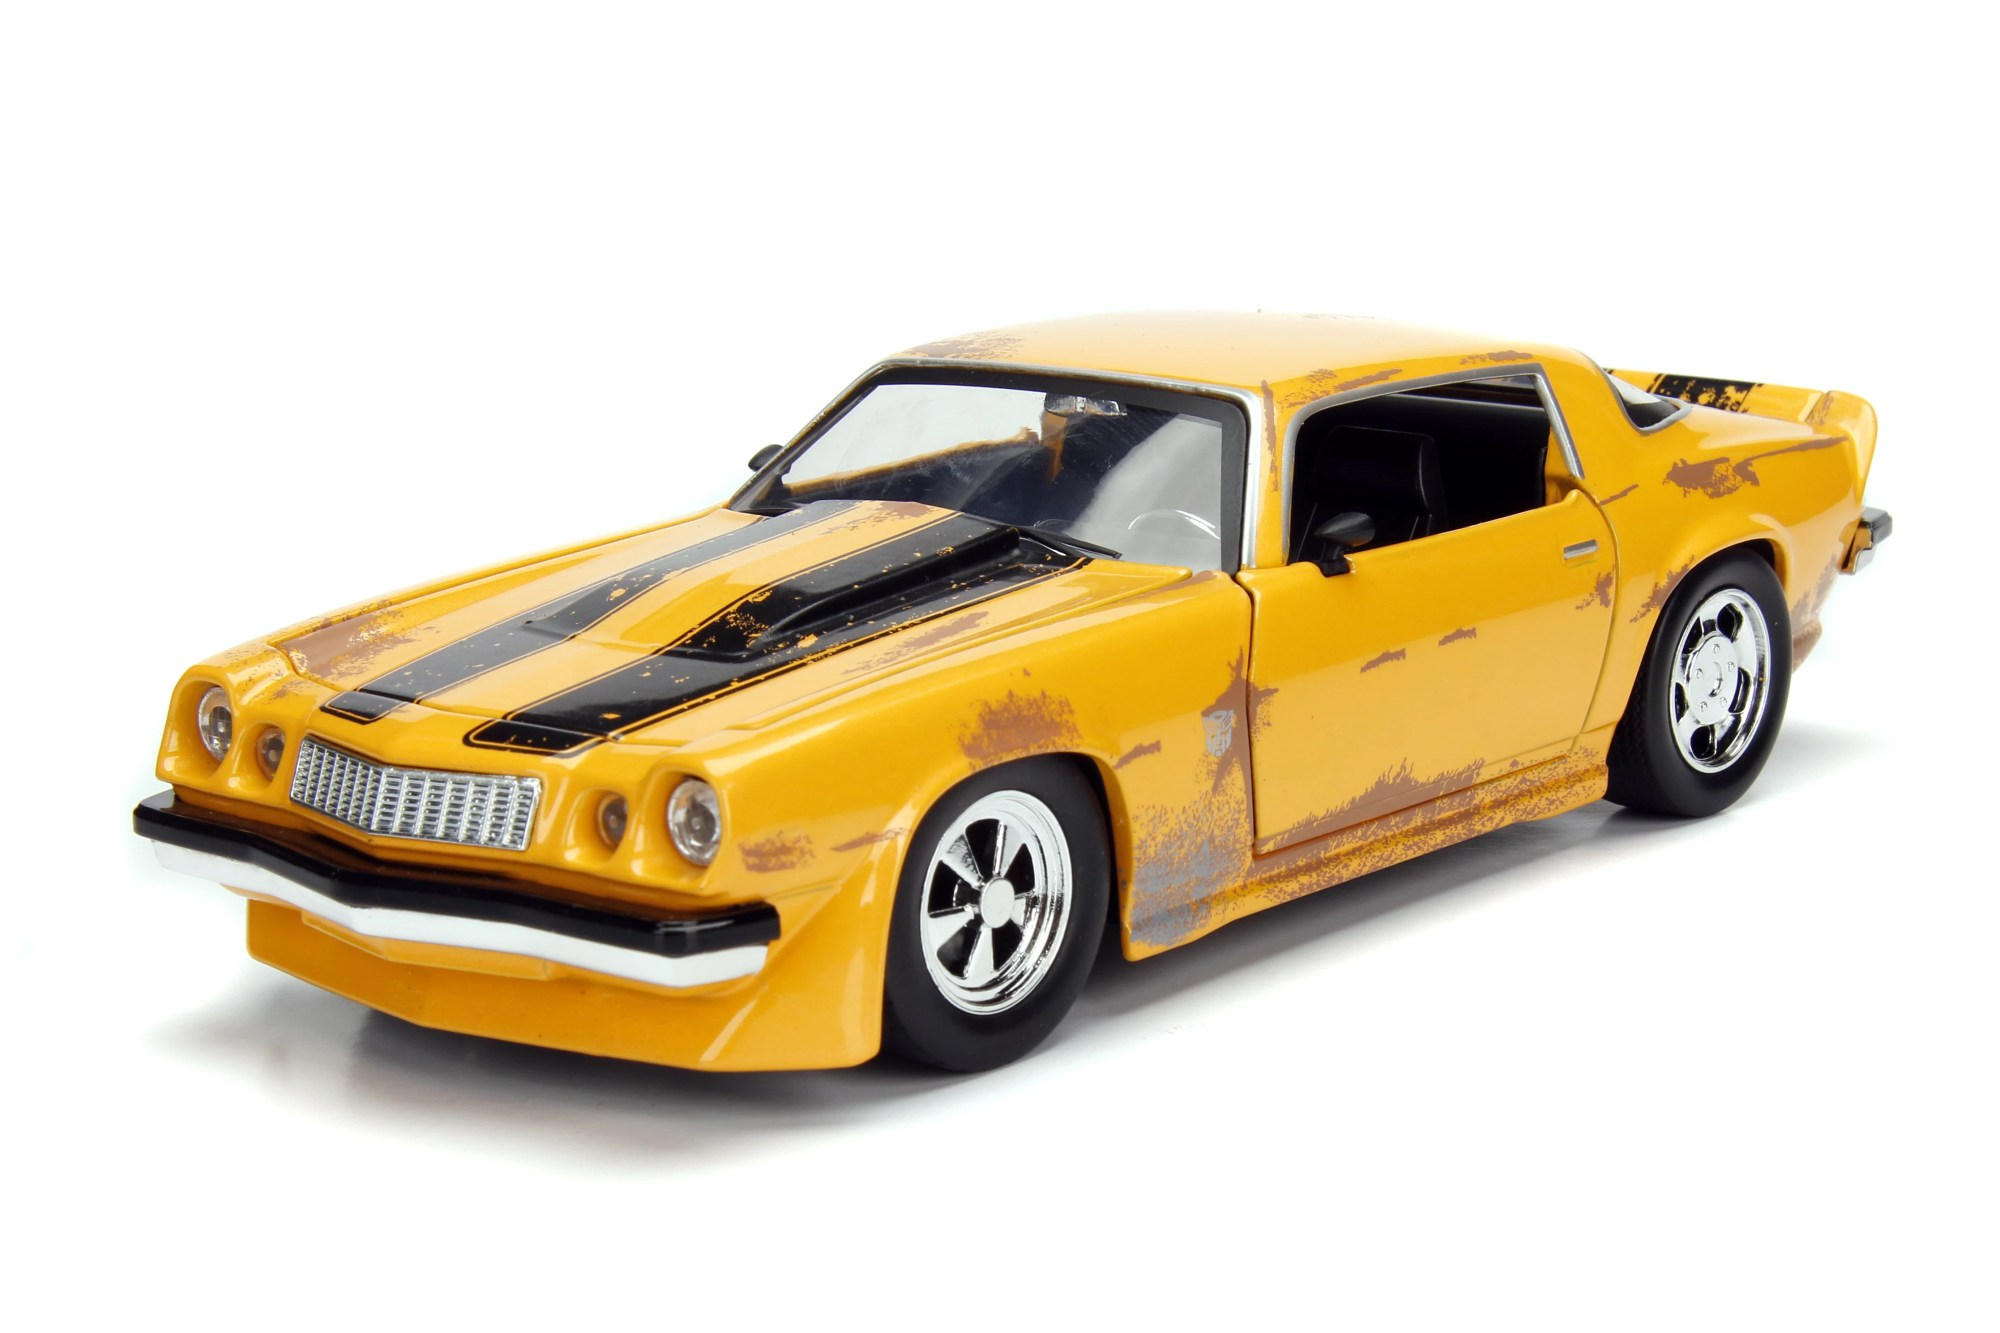 hight resolution of hollywood rides 1 24 scale 1977 chevrolet camaro concept bumblebee in yellow from transformers movie diecast car by jada toys walmart com